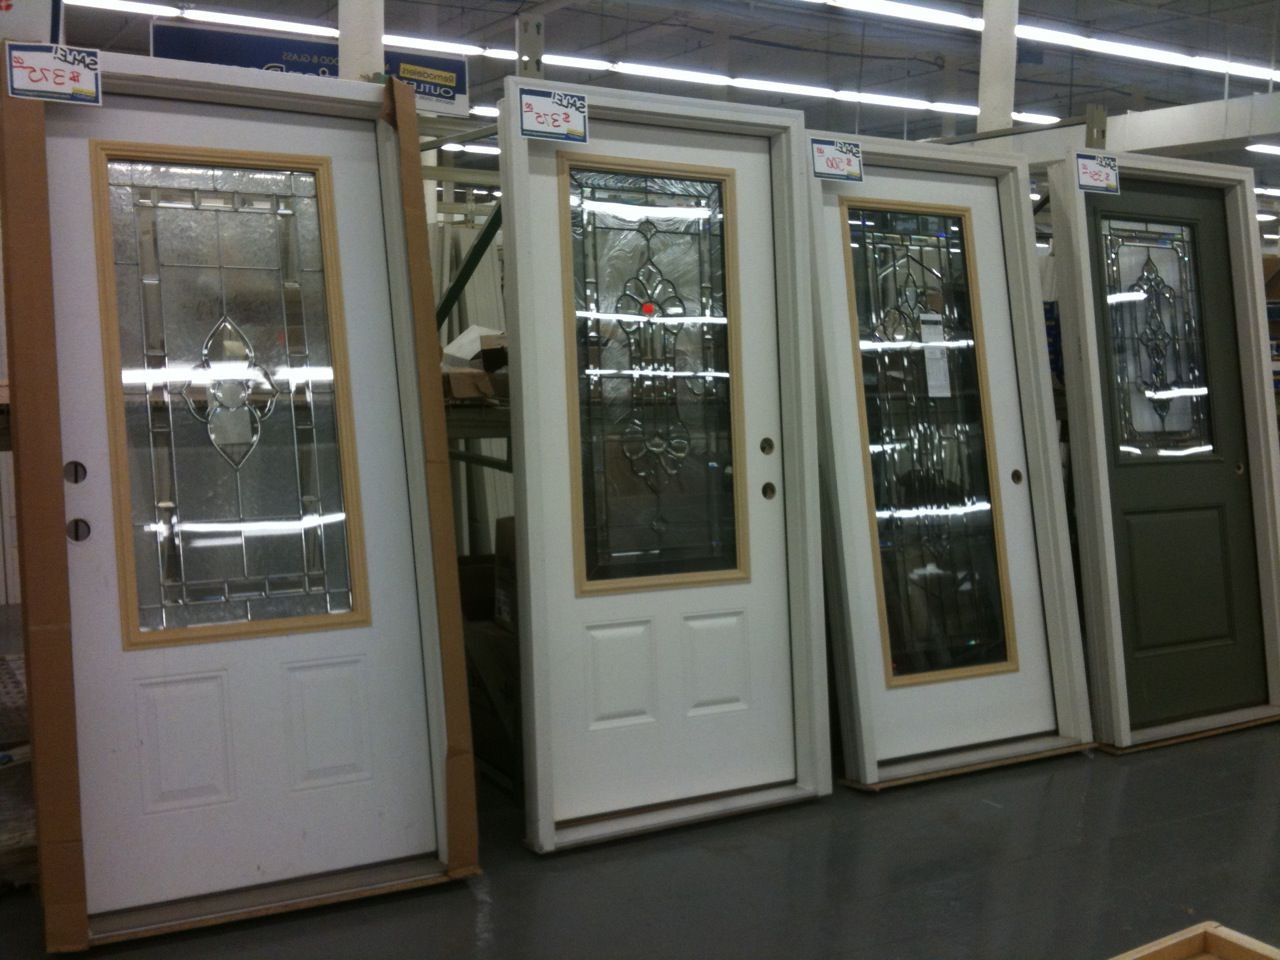 Masonite fiberglass doors – price 350-500 dollars